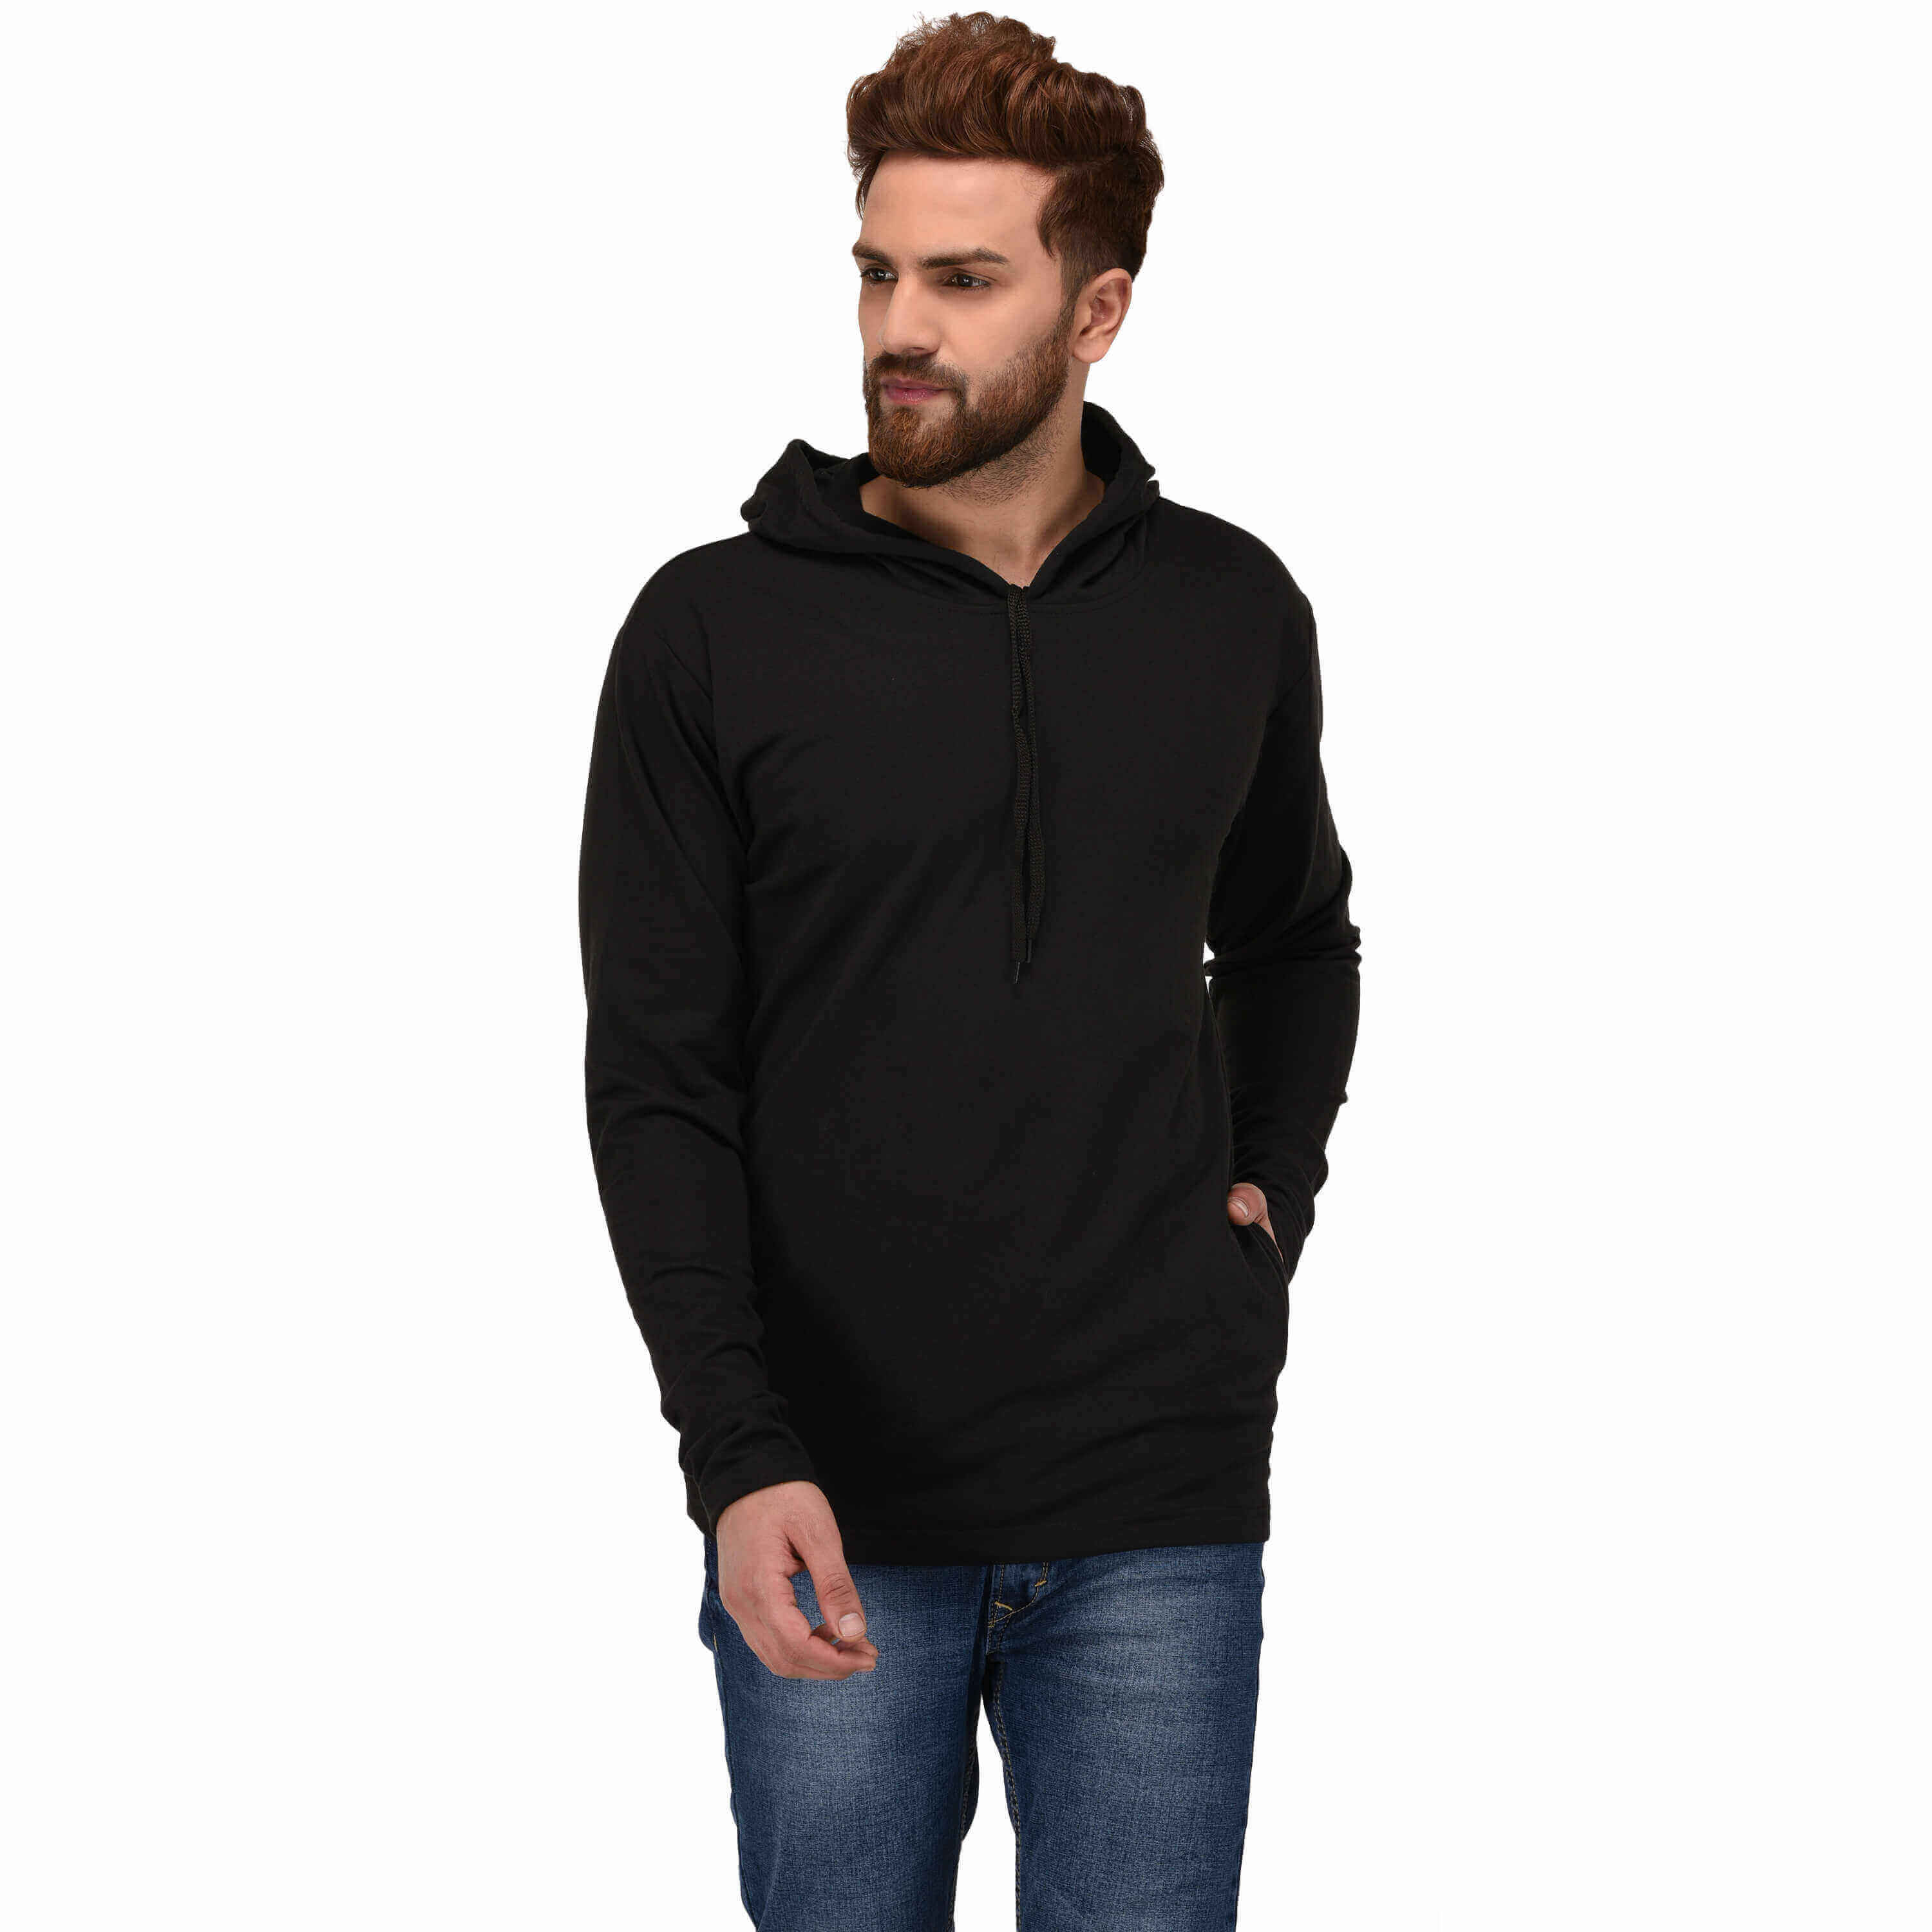 Sports Hoodies Manufacturers in Dominican-republic